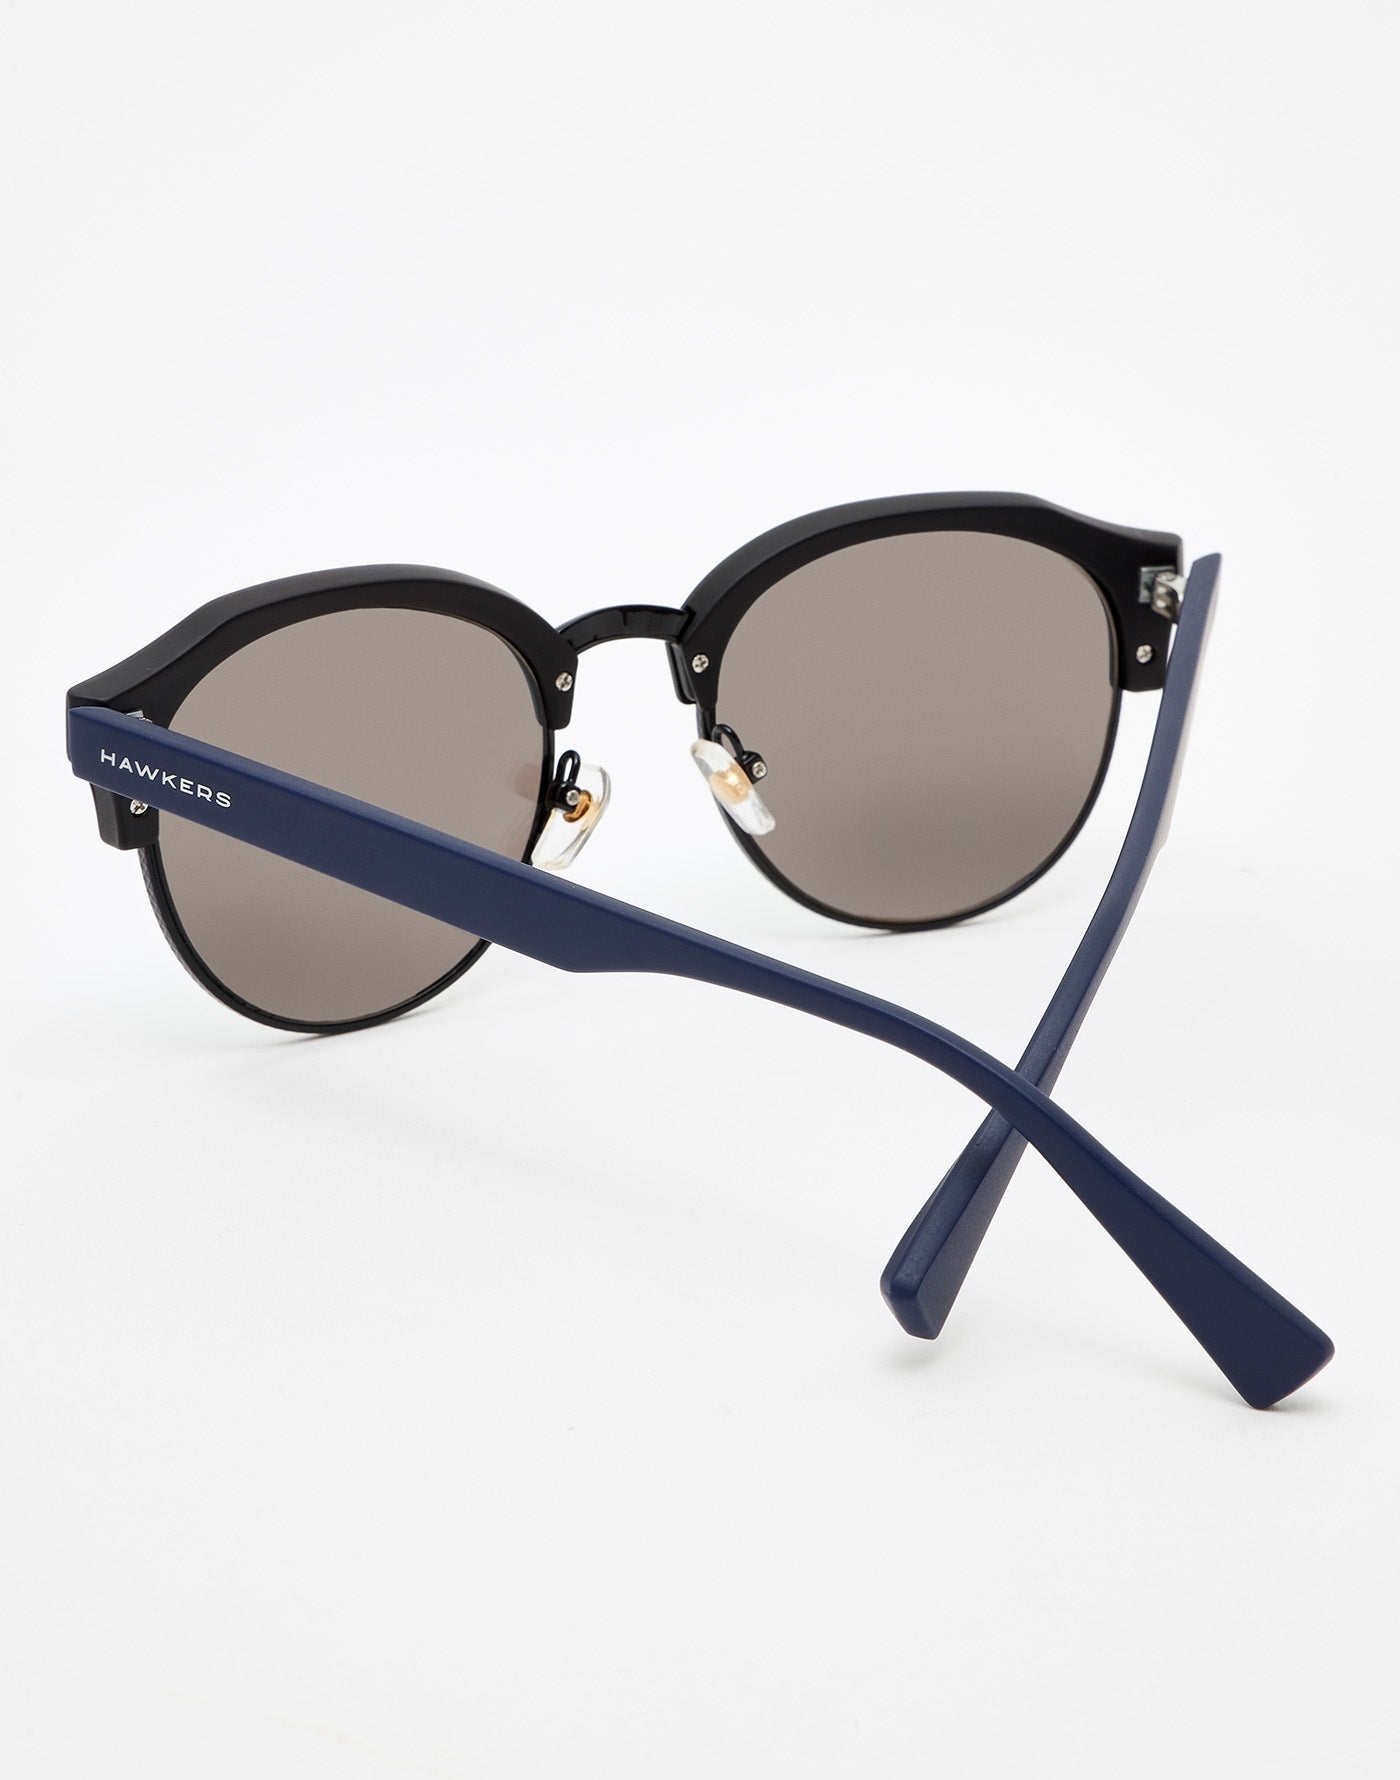 Black · Navy Blue Chrome Classic Rounded